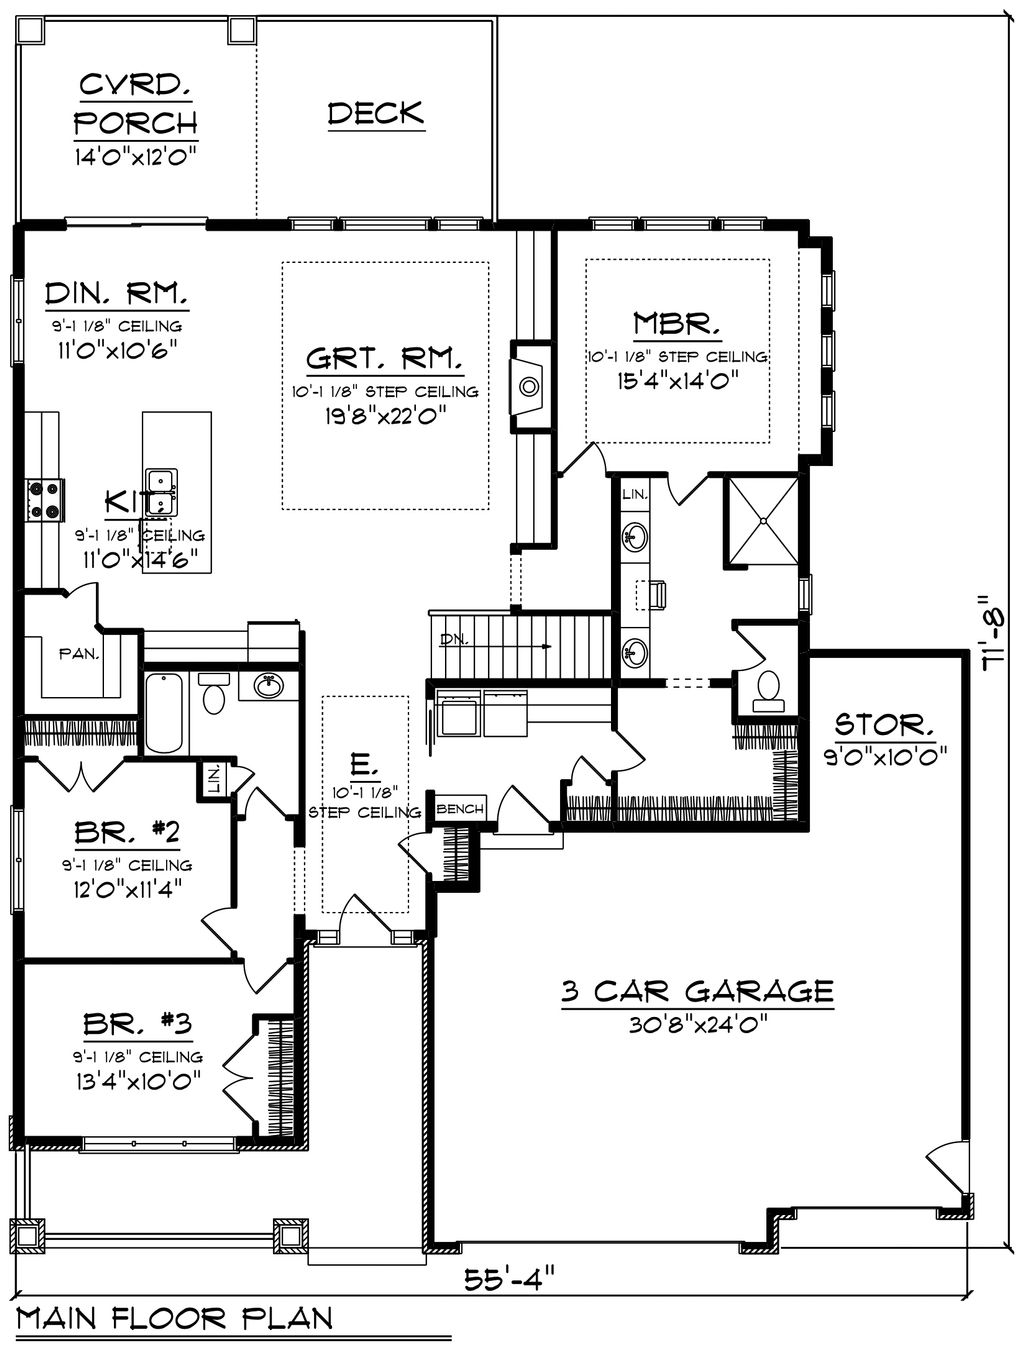 Ranch Style House Plan - 3 Beds 2 Baths 2005 Sq/Ft Plan #70-1485 on electrical architectural plans, electrical bathroom plans, electrical doors, electrical power plan, electrical plan example, electrical installation drawing, electrical plan key, electrical floor plans, electrical mechanical engineering, blueprint electrical plans, 2nd story extension plans, electrical plans drawings, electrical building, electrical drawings samples, electrical plans for pool, electrical formula calculator, electrical lighting plan, commercial plumbing plans, draw up electrical plans, electrical wiring,